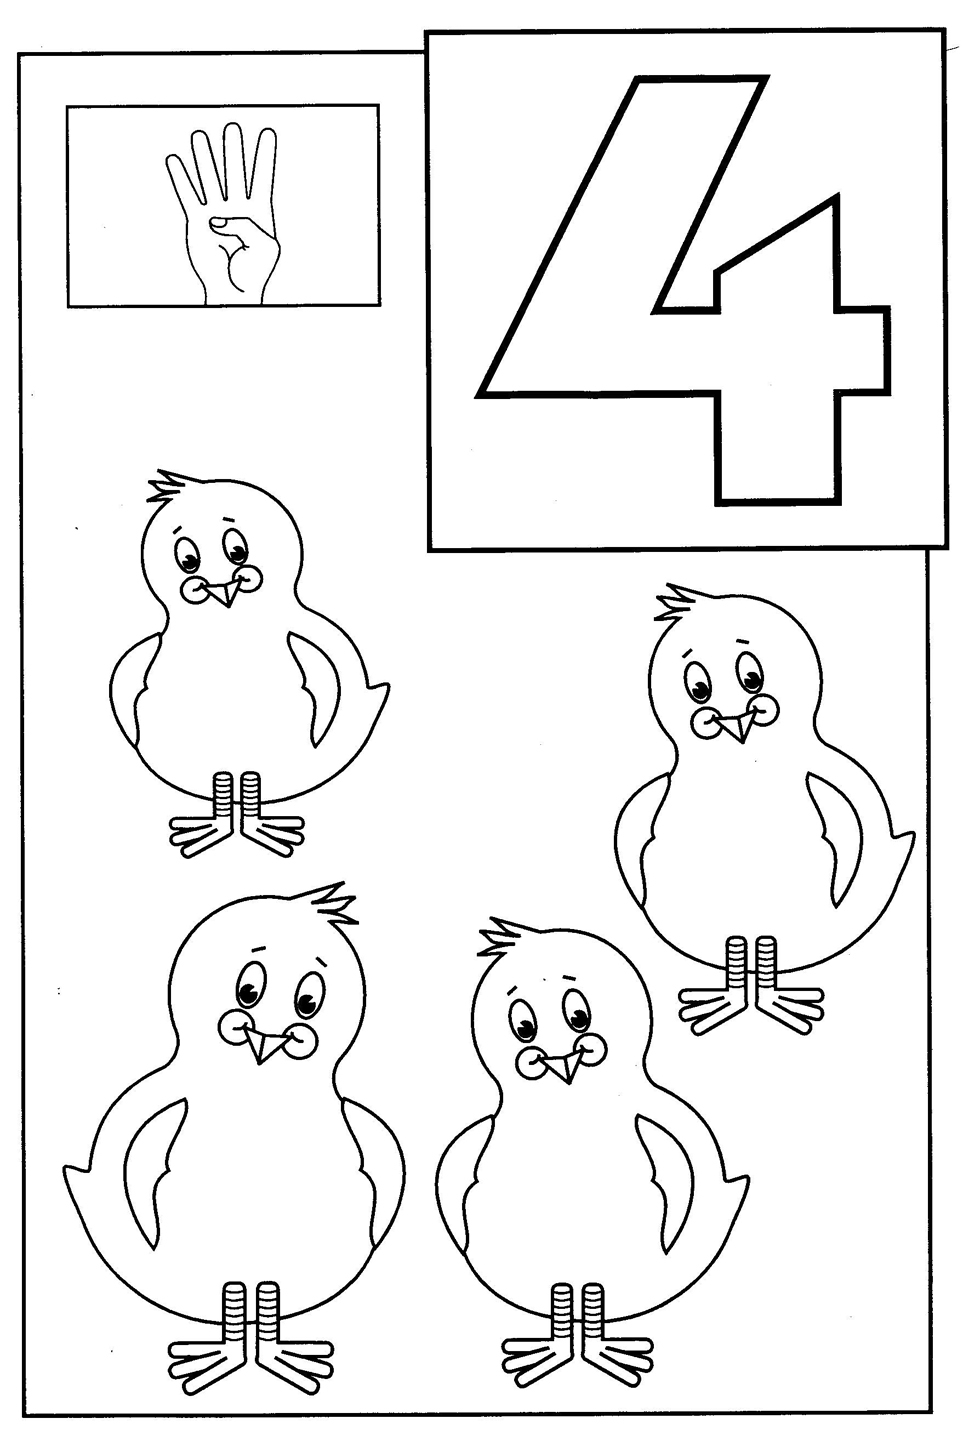 toddler coloring pages numbers 4 kidscom coloring pages kidsuki pages numbers coloring toddler